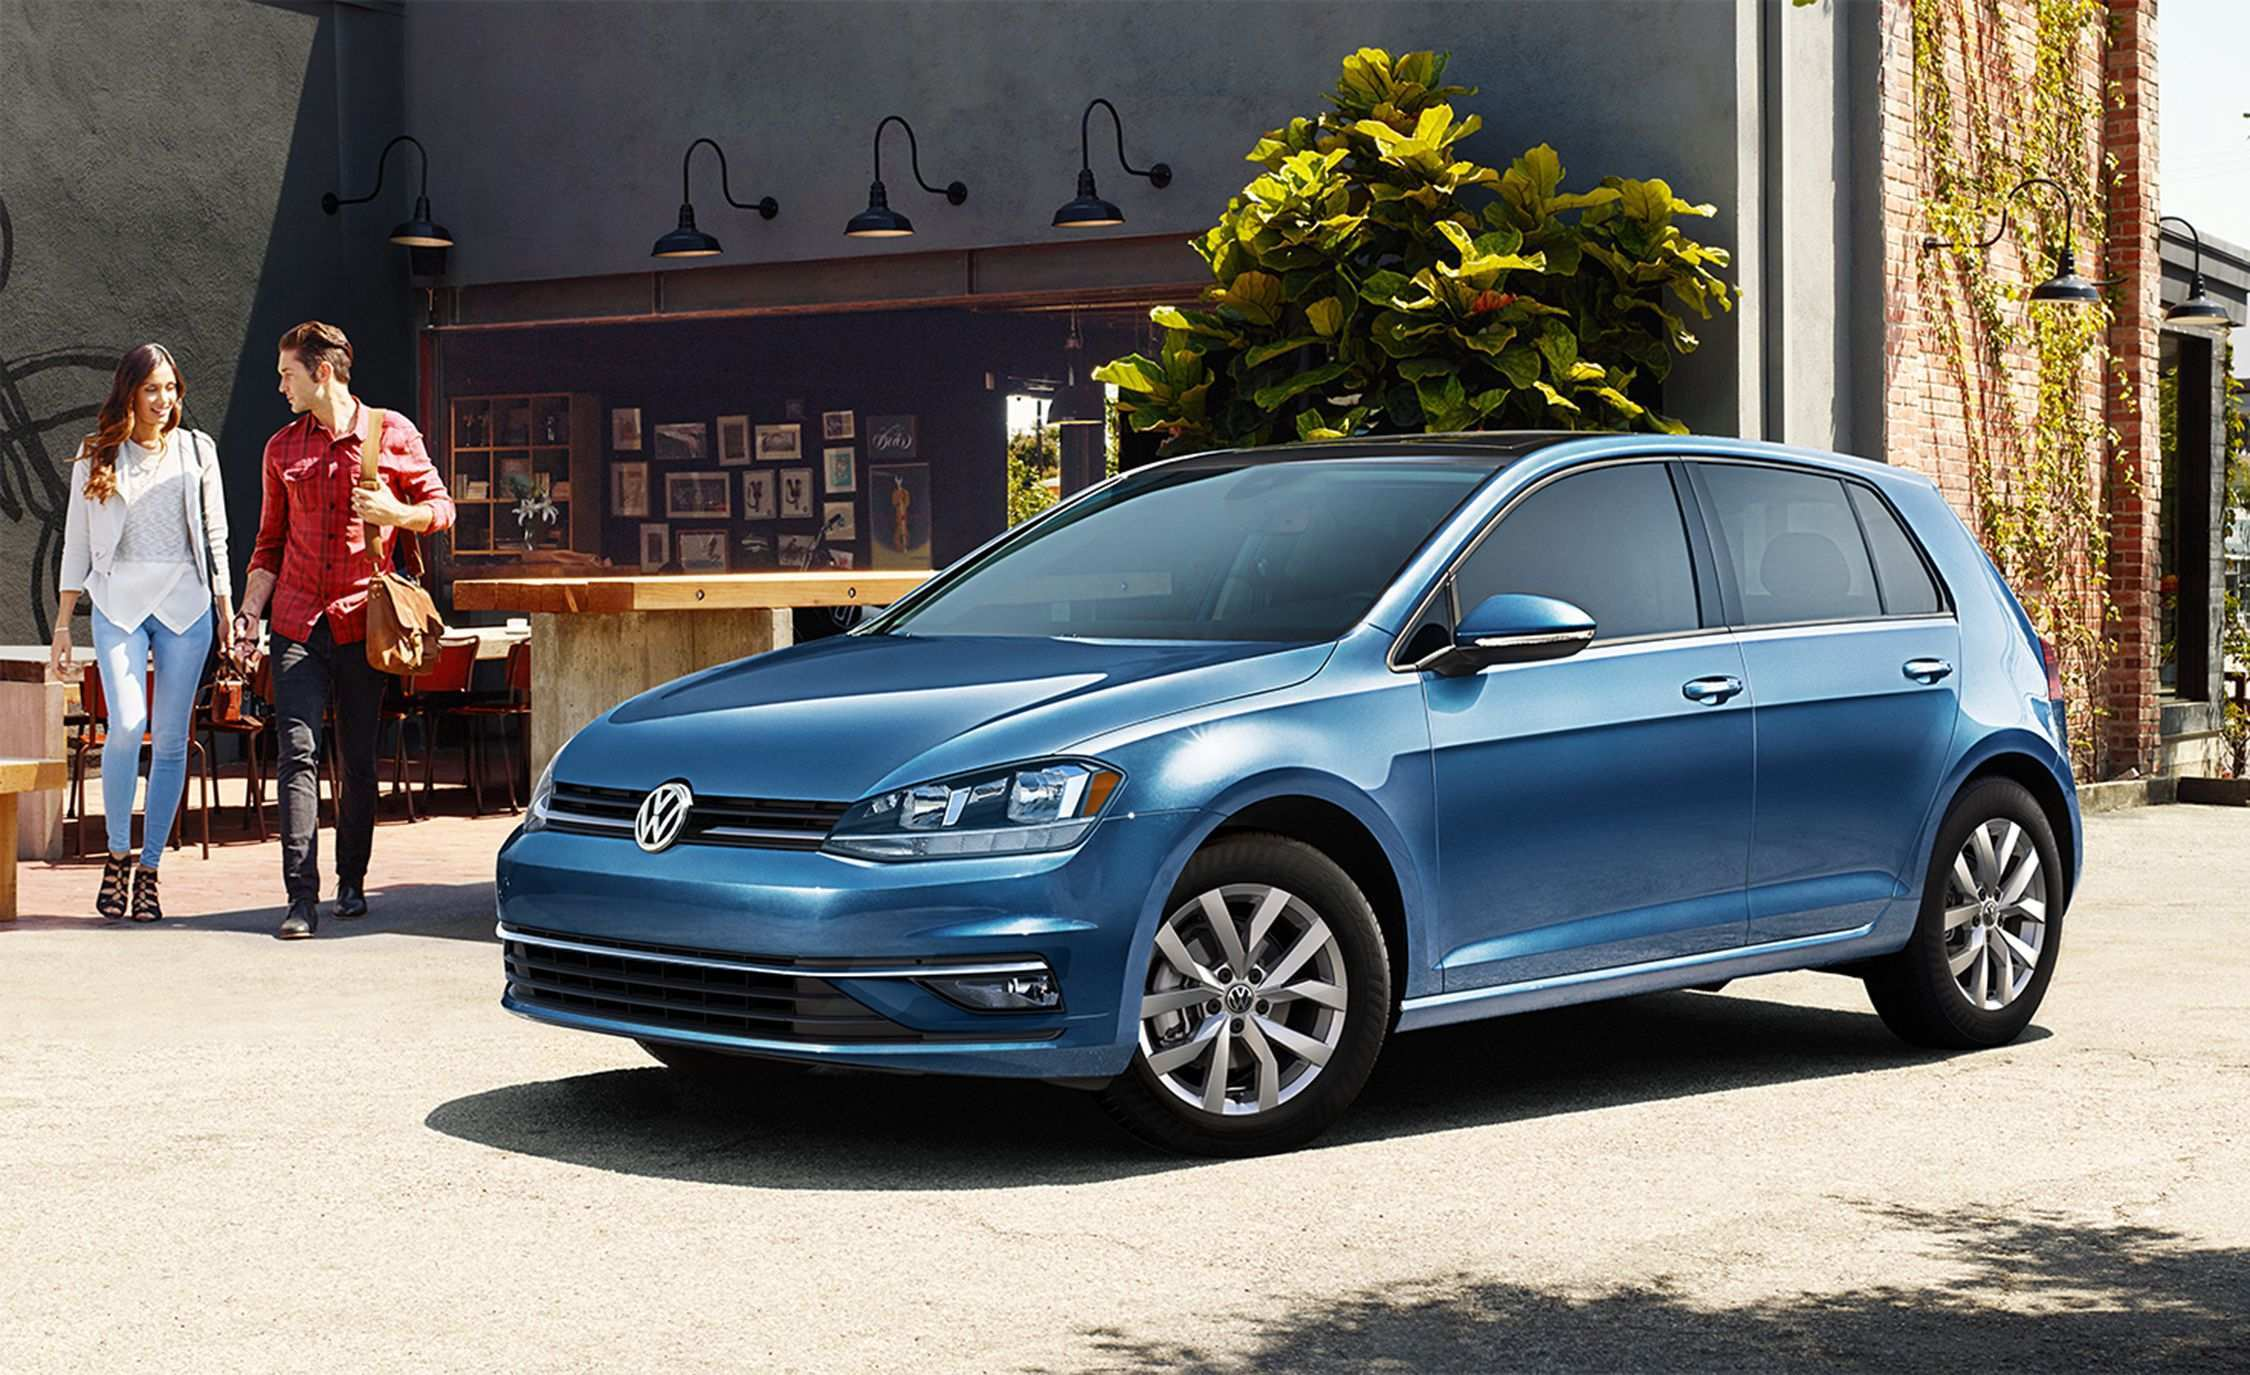 76 Great Vw Golf 2019 Performance and New Engine for Vw Golf 2019